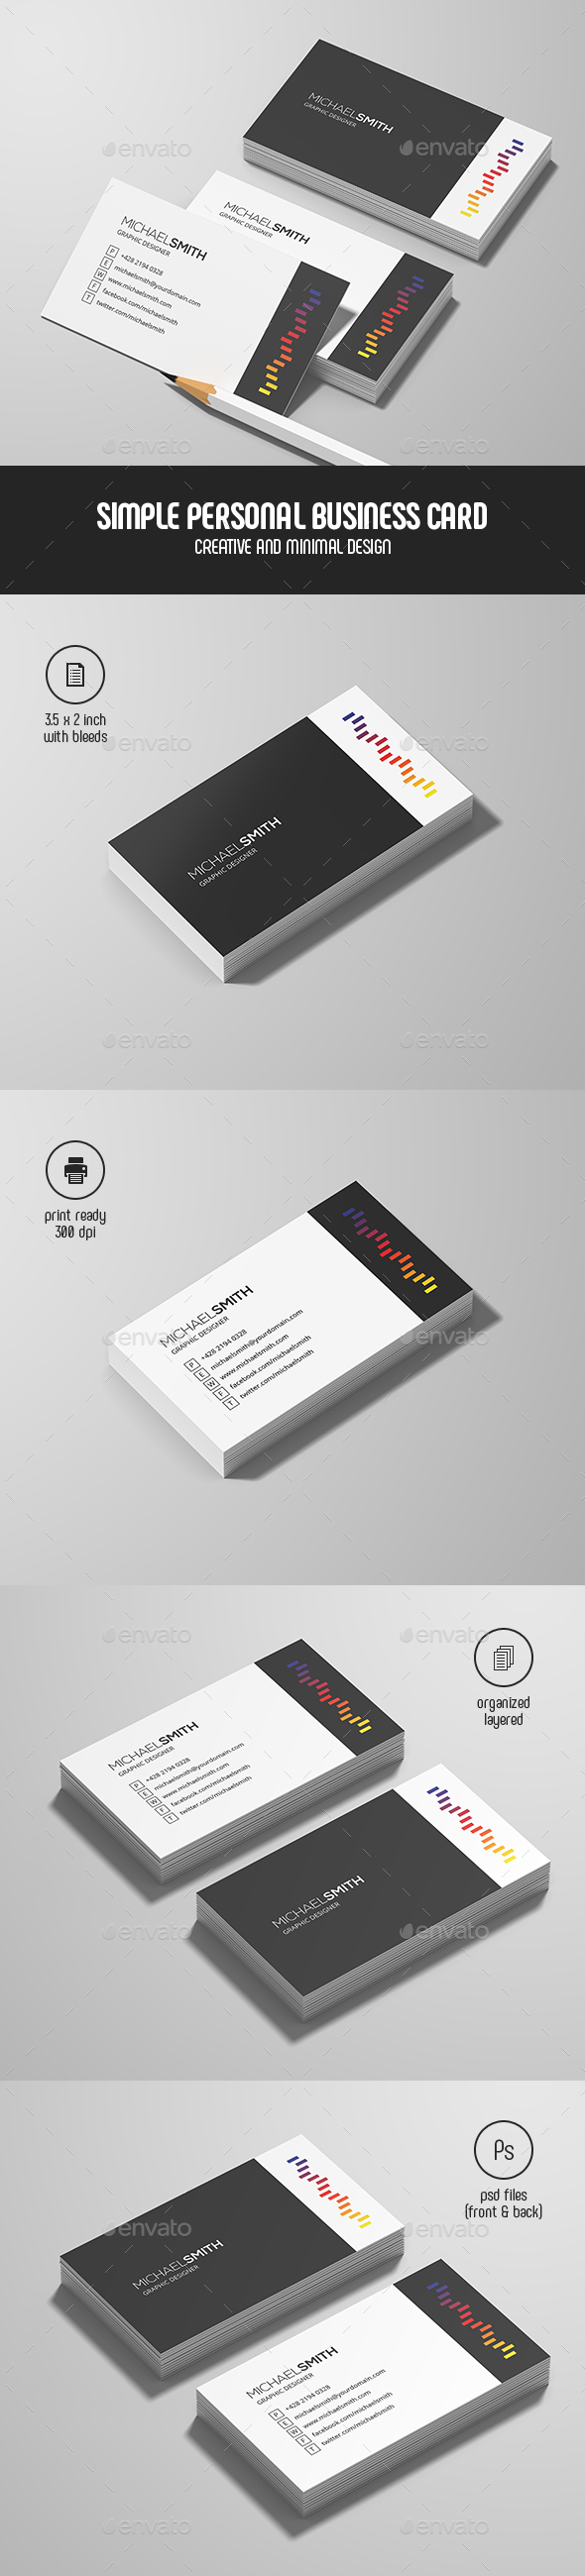 Simple Personal Business Card - Creative Business Cards